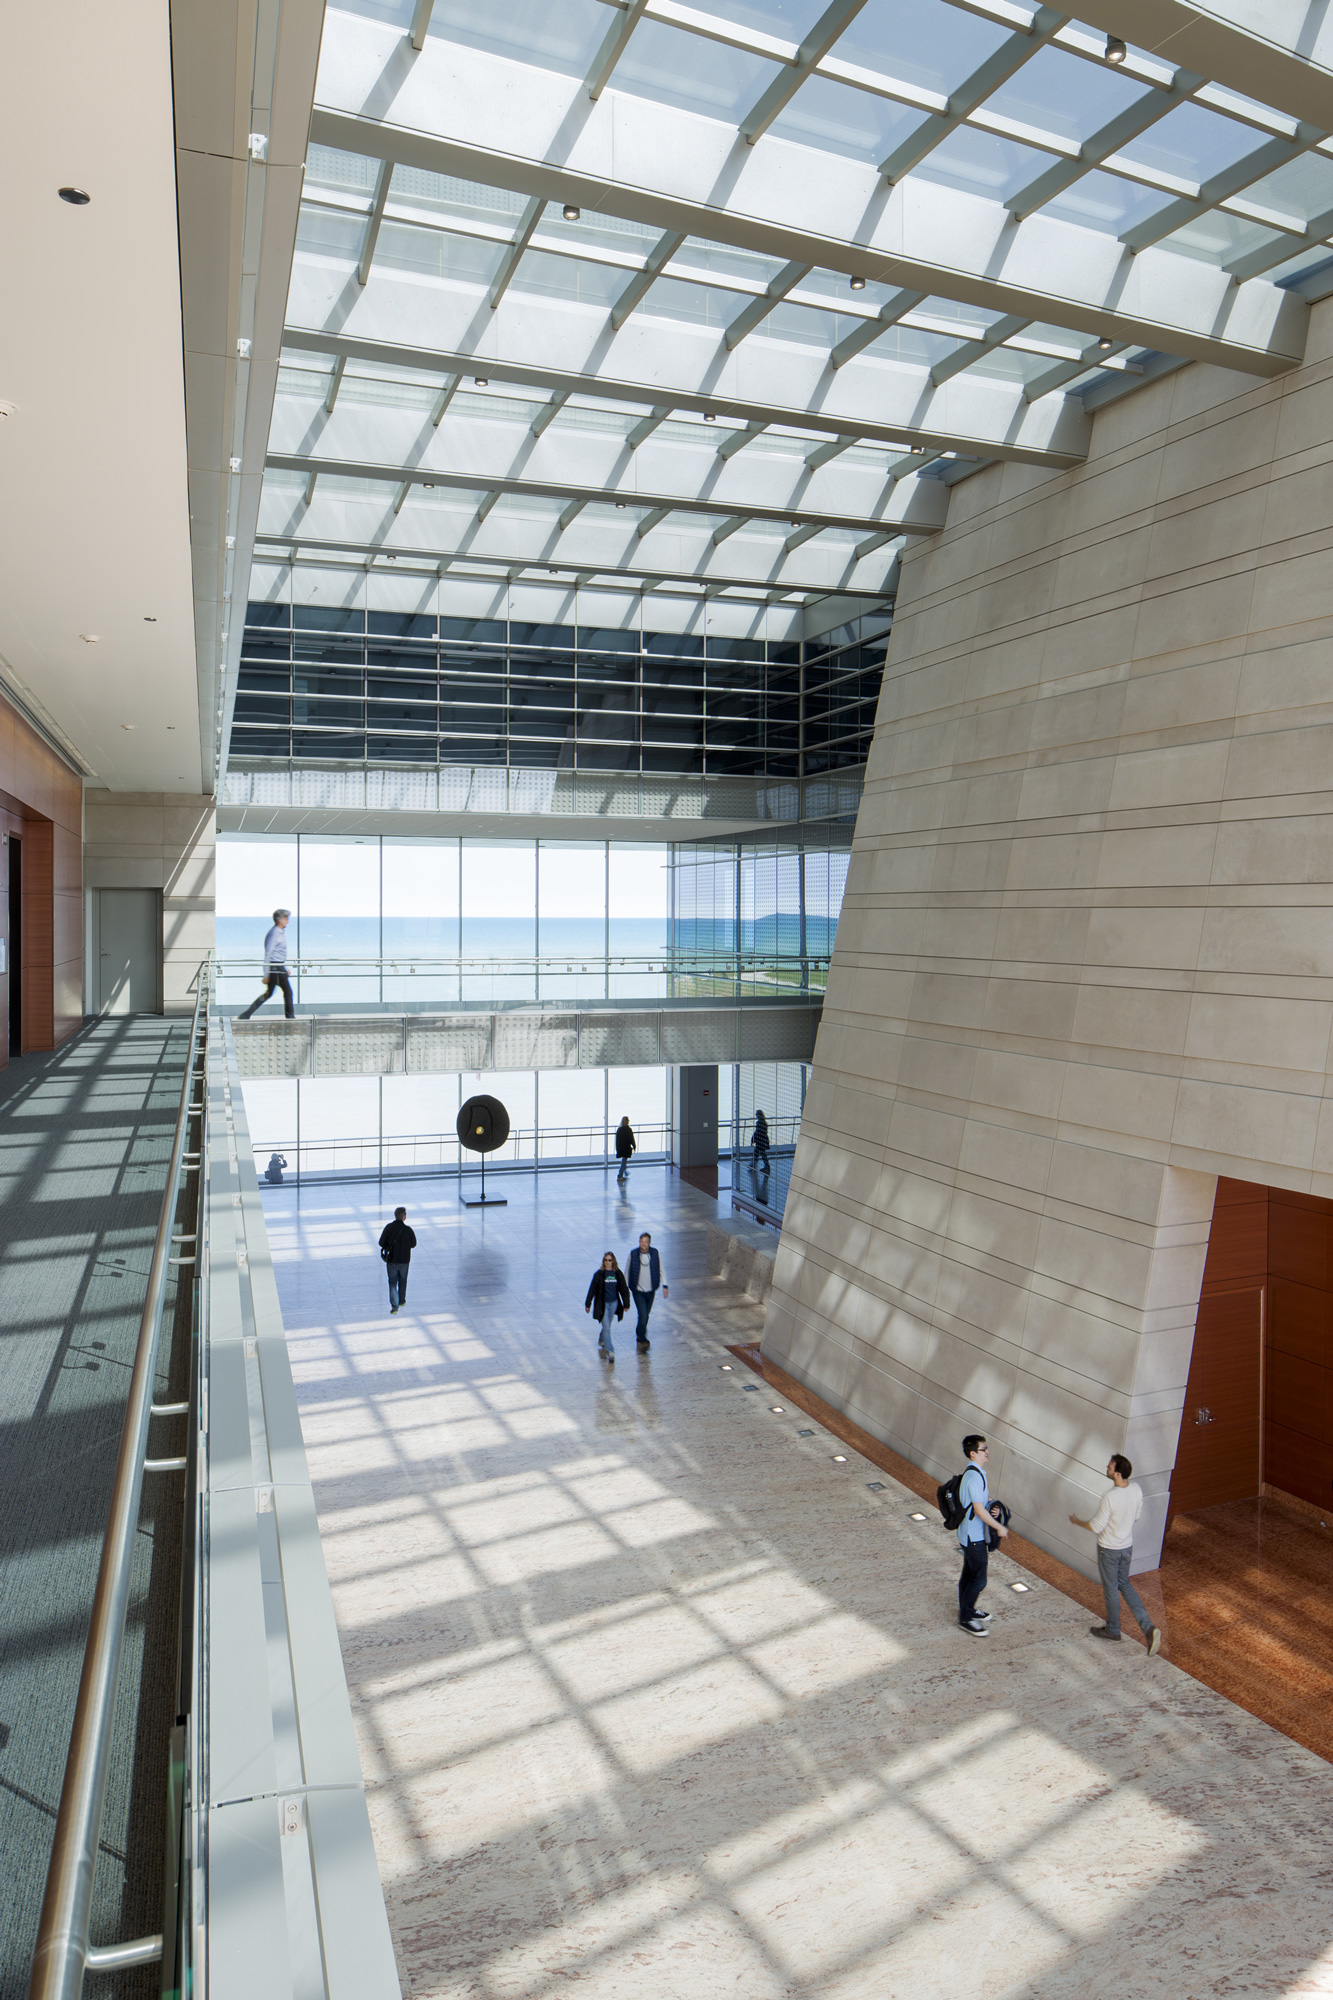 Northwestern University Patrick G. and Shirley W. Ryan Center for the Musical Arts © Tom Rossiter